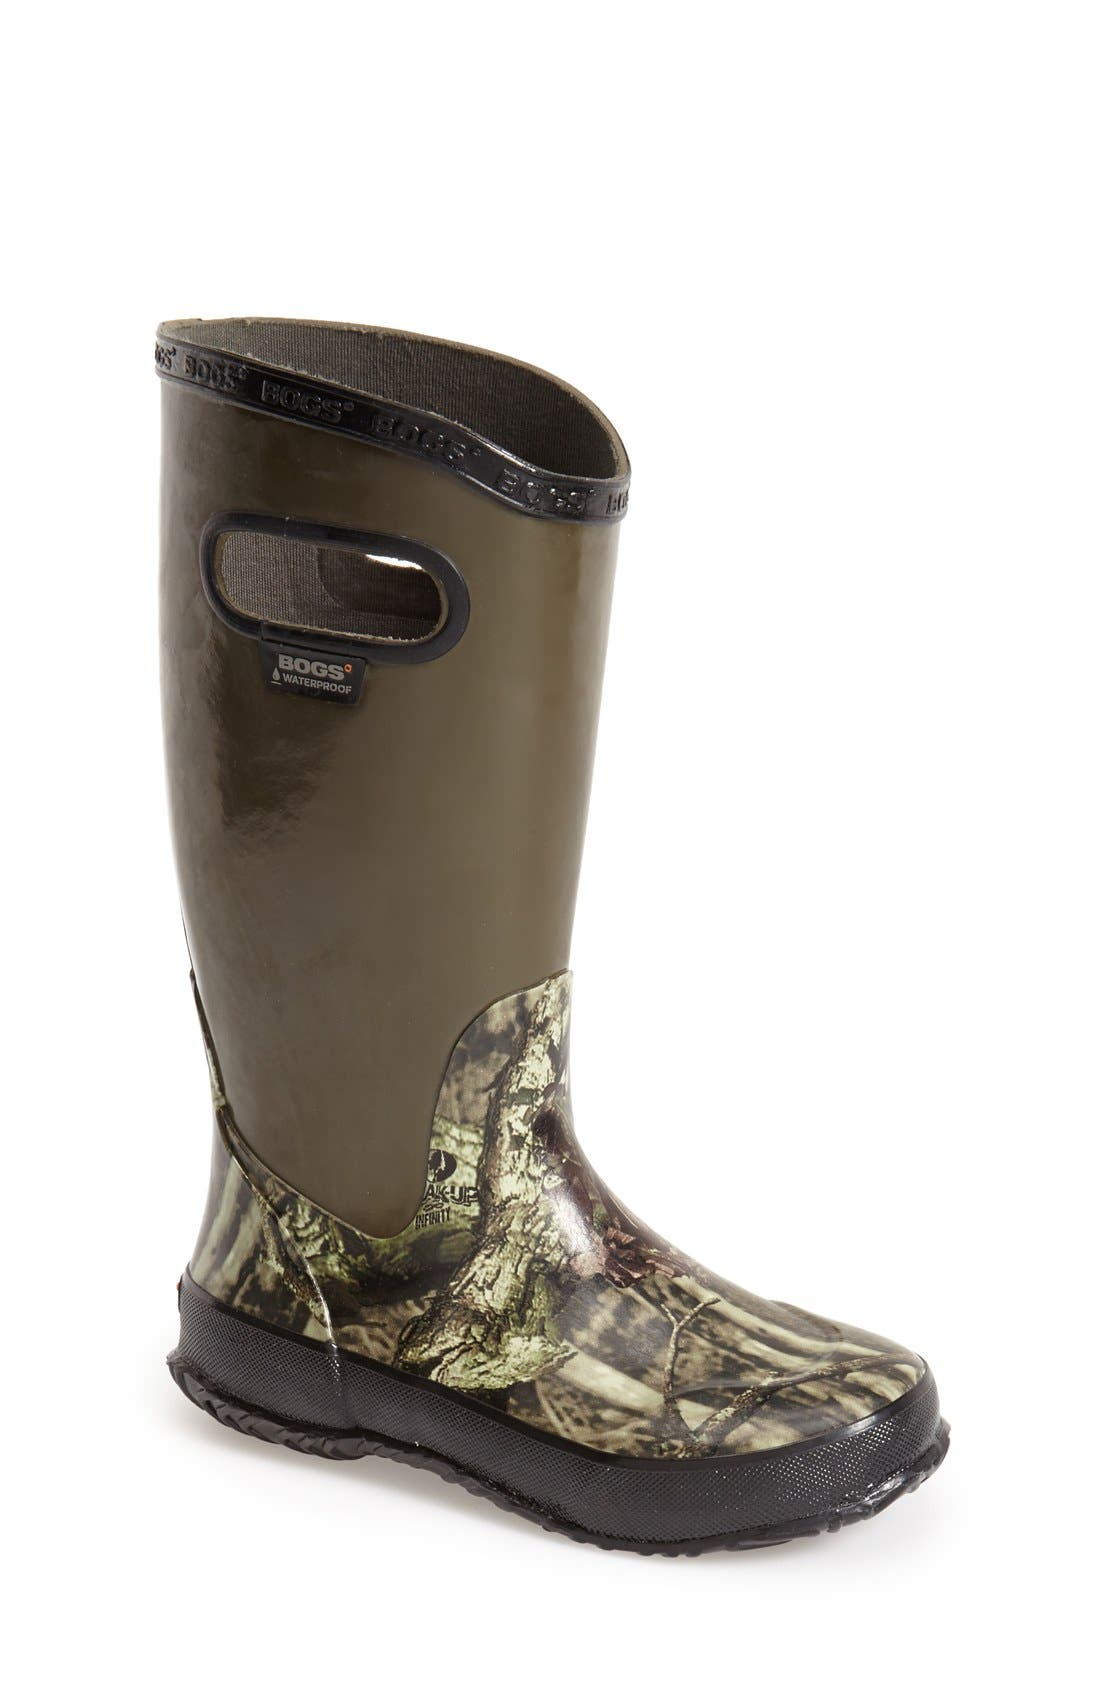 BOGS 'Hunting' Waterproof Boot